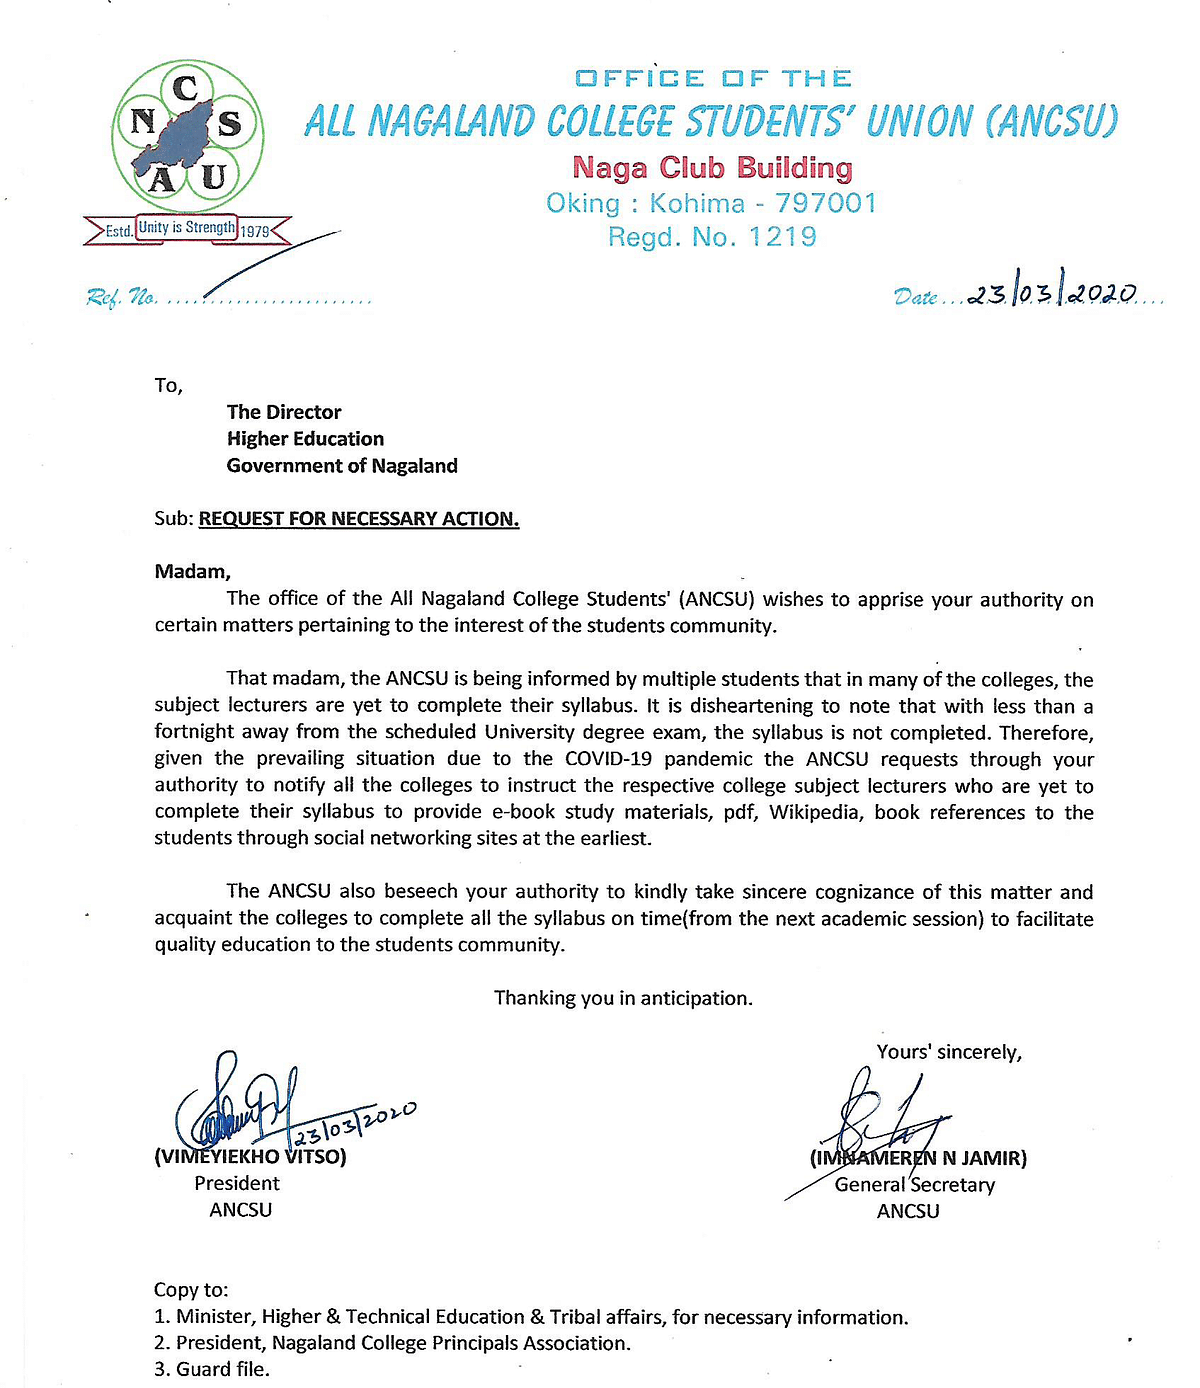 The letter that was addressed to the director of higher education, Nagaland by ANCSU on Monday